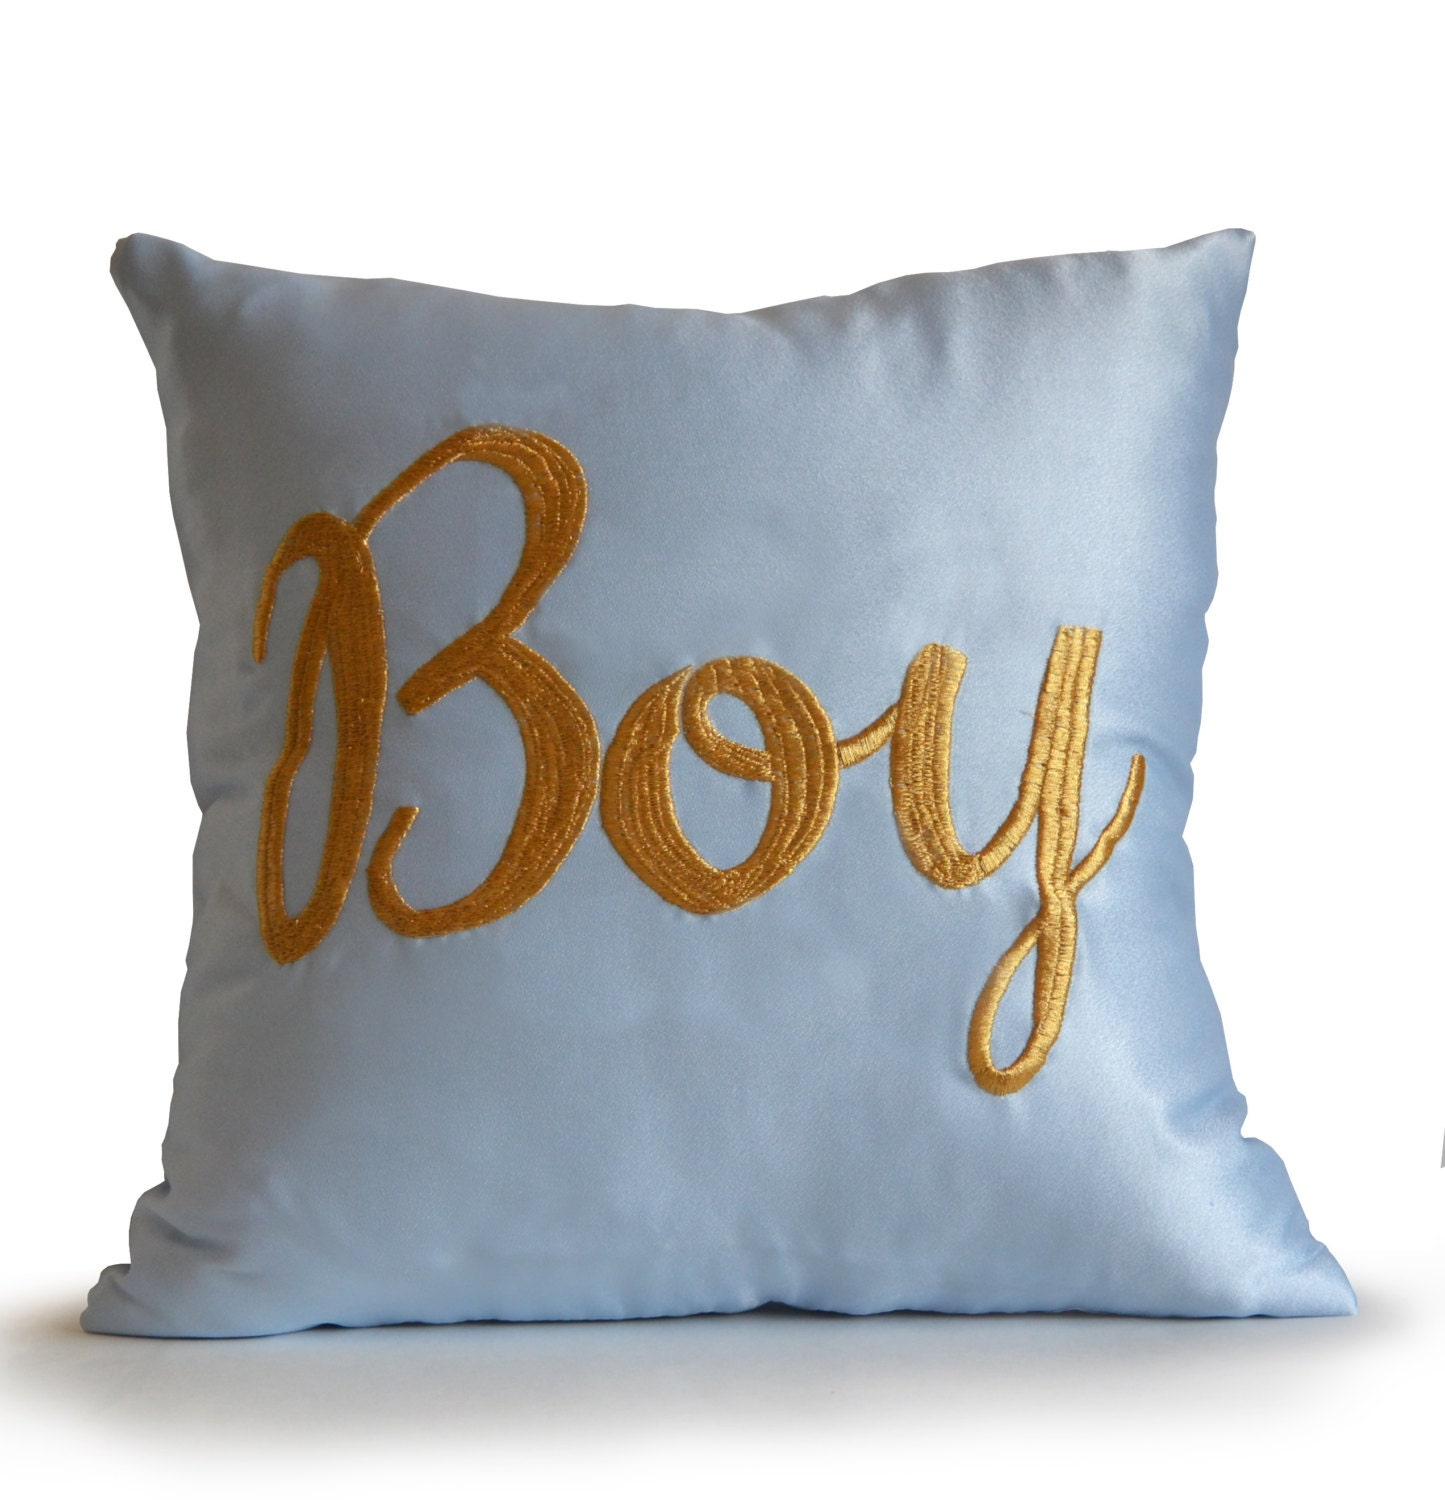 Throw Pillows Aqua Blue : Aqua Blue Satin Throw Pillow Cover Blue Decorative Pillows